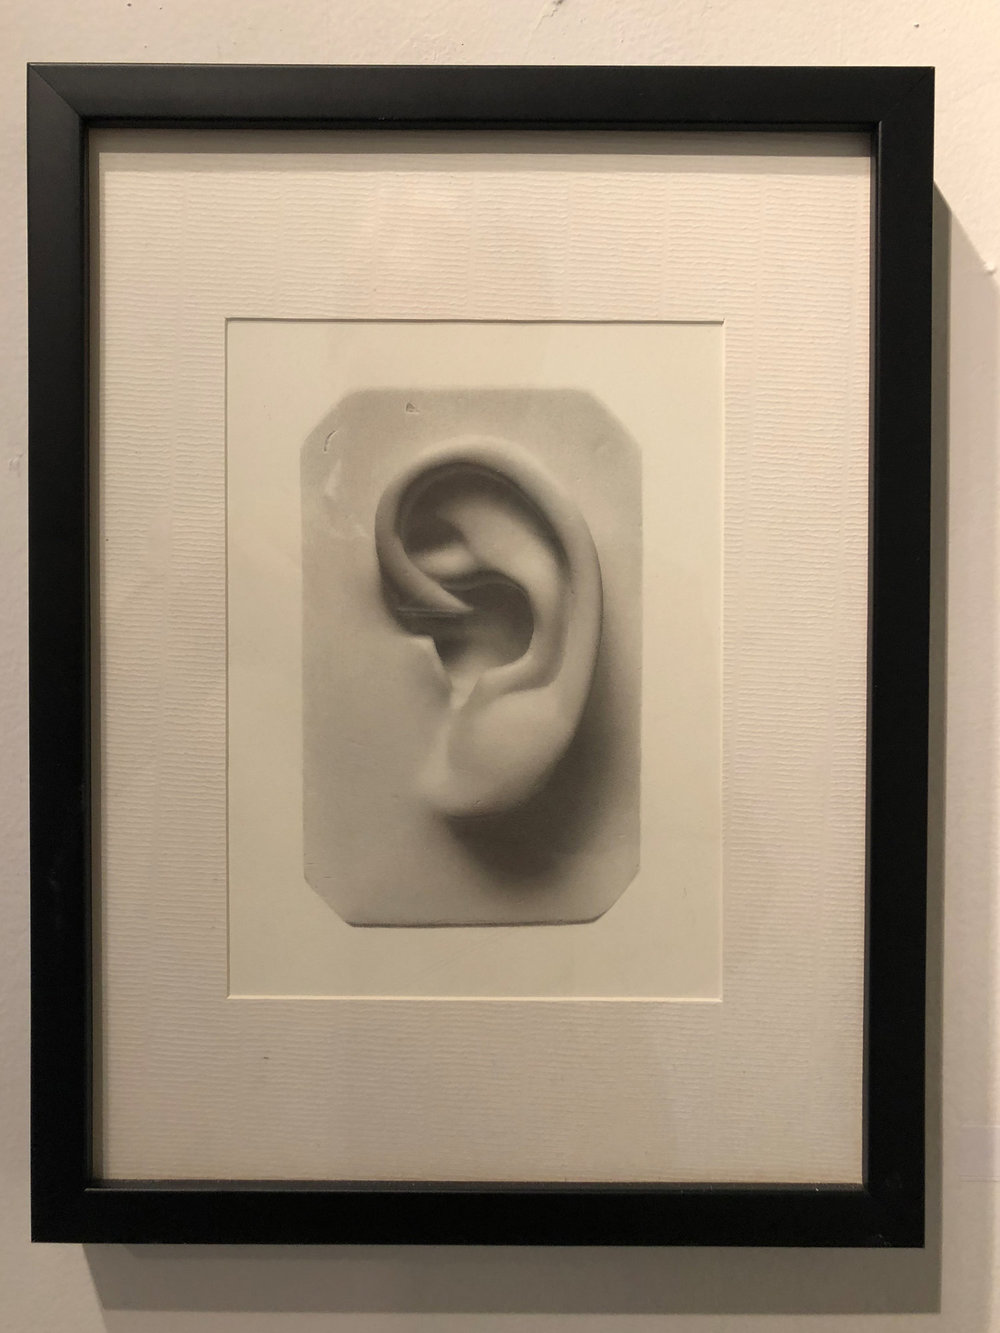 Andrews Shears  Untitled(Ear)  Graphite on Paper